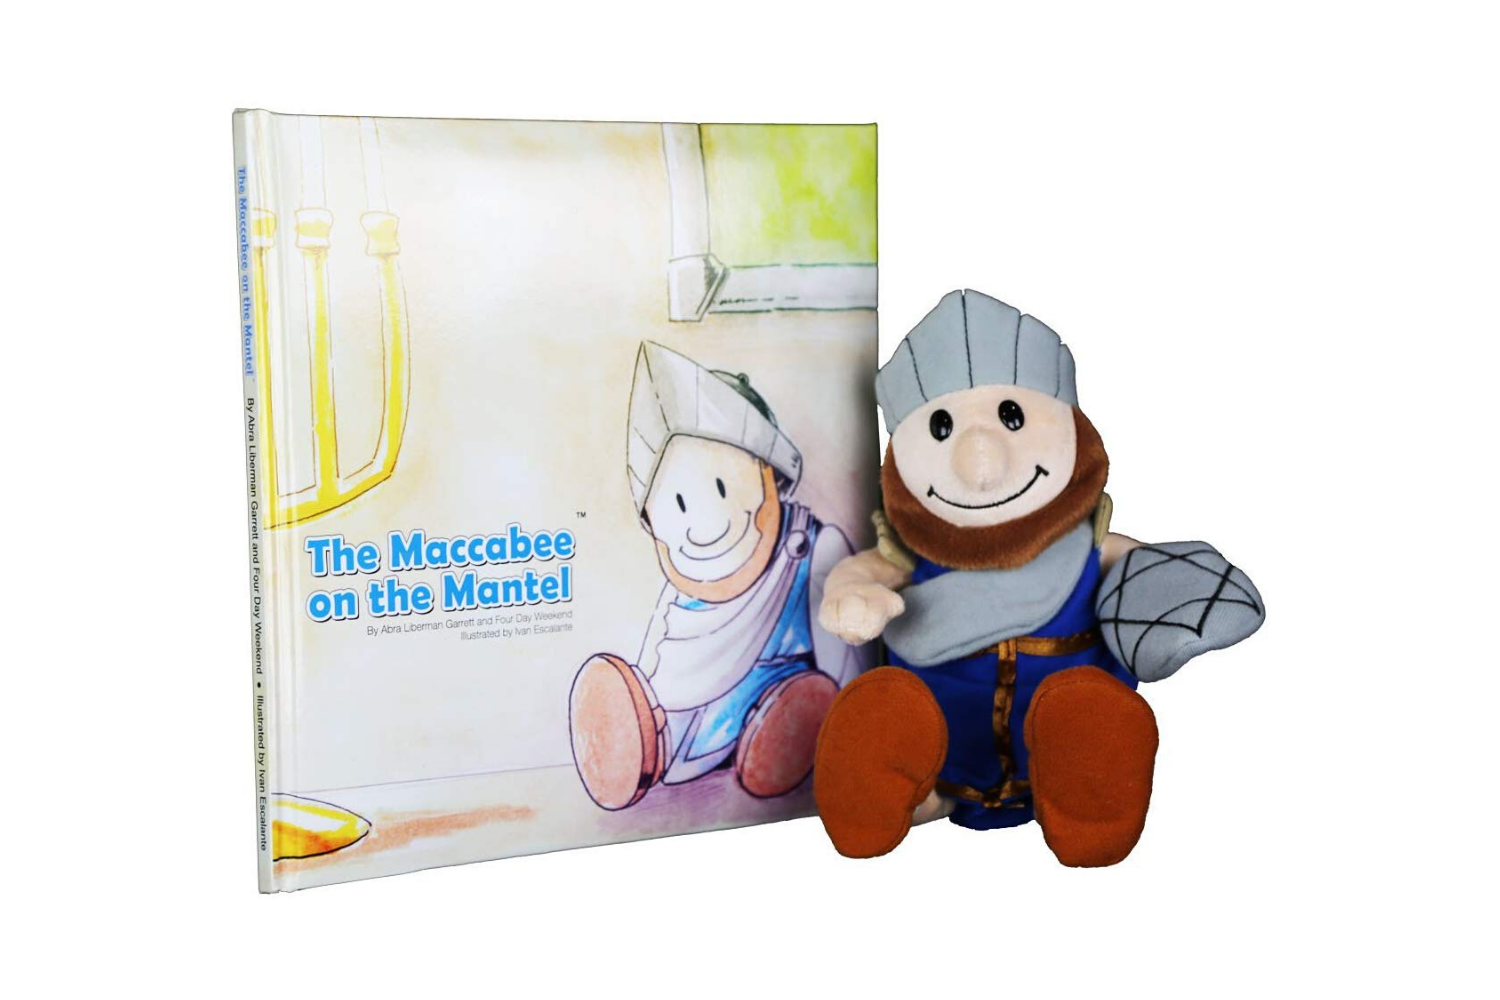 Maccabee on the Mantel